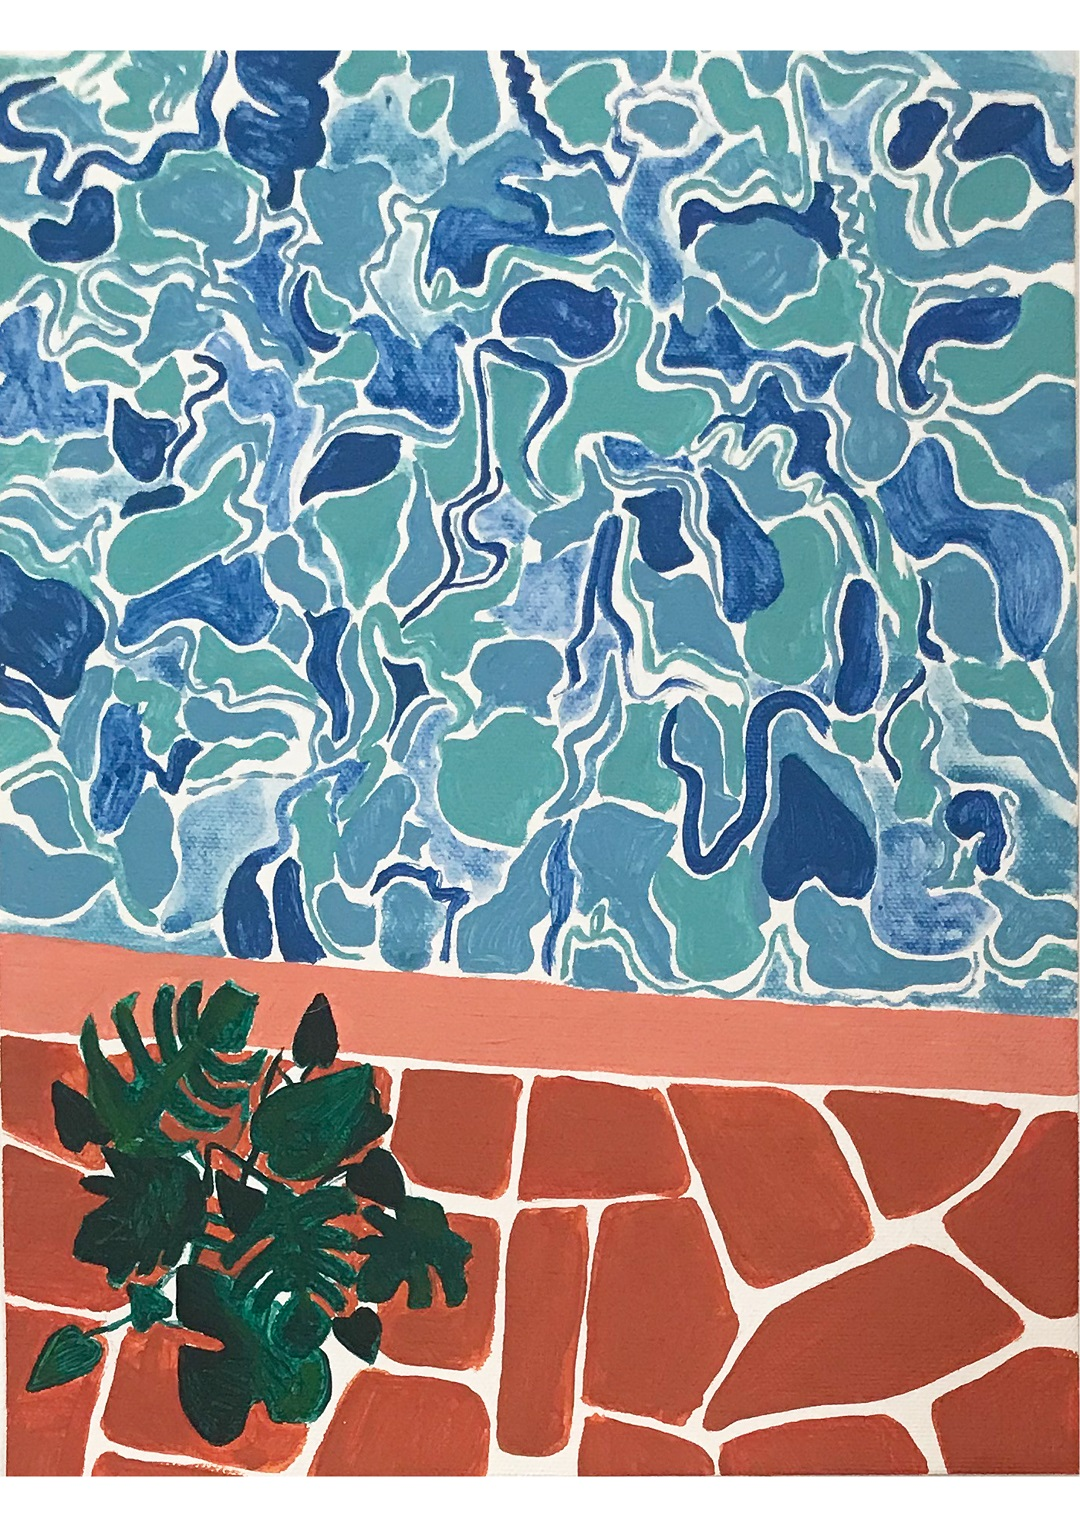 Pool Patterns Kate Mary Oil pastel on paper, 29.7 x 21 cm